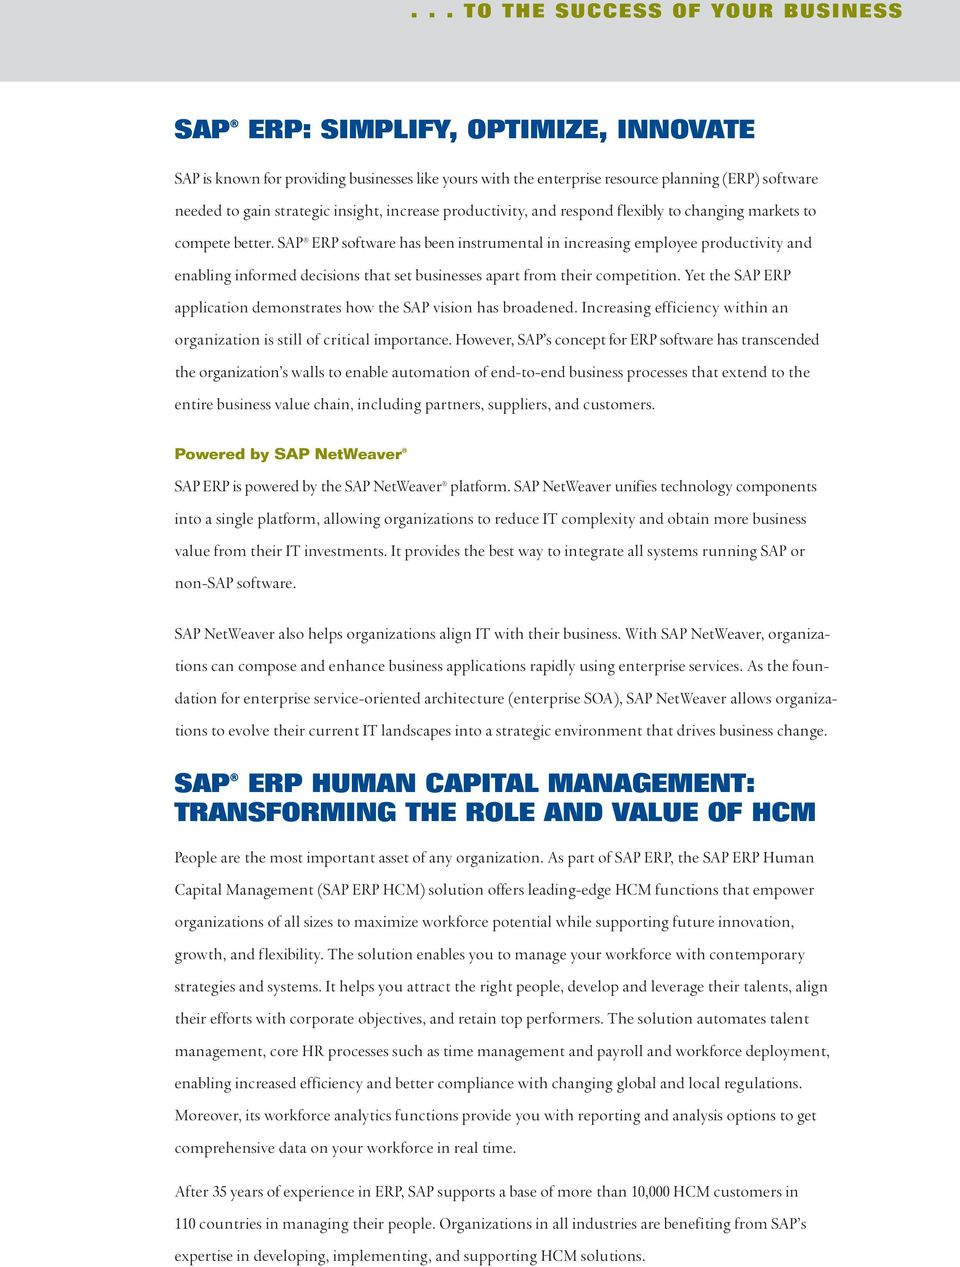 SAP ERP software has been instrumental in increasing employee productivity and enabling informed decisions that set businesses apart from their competition.